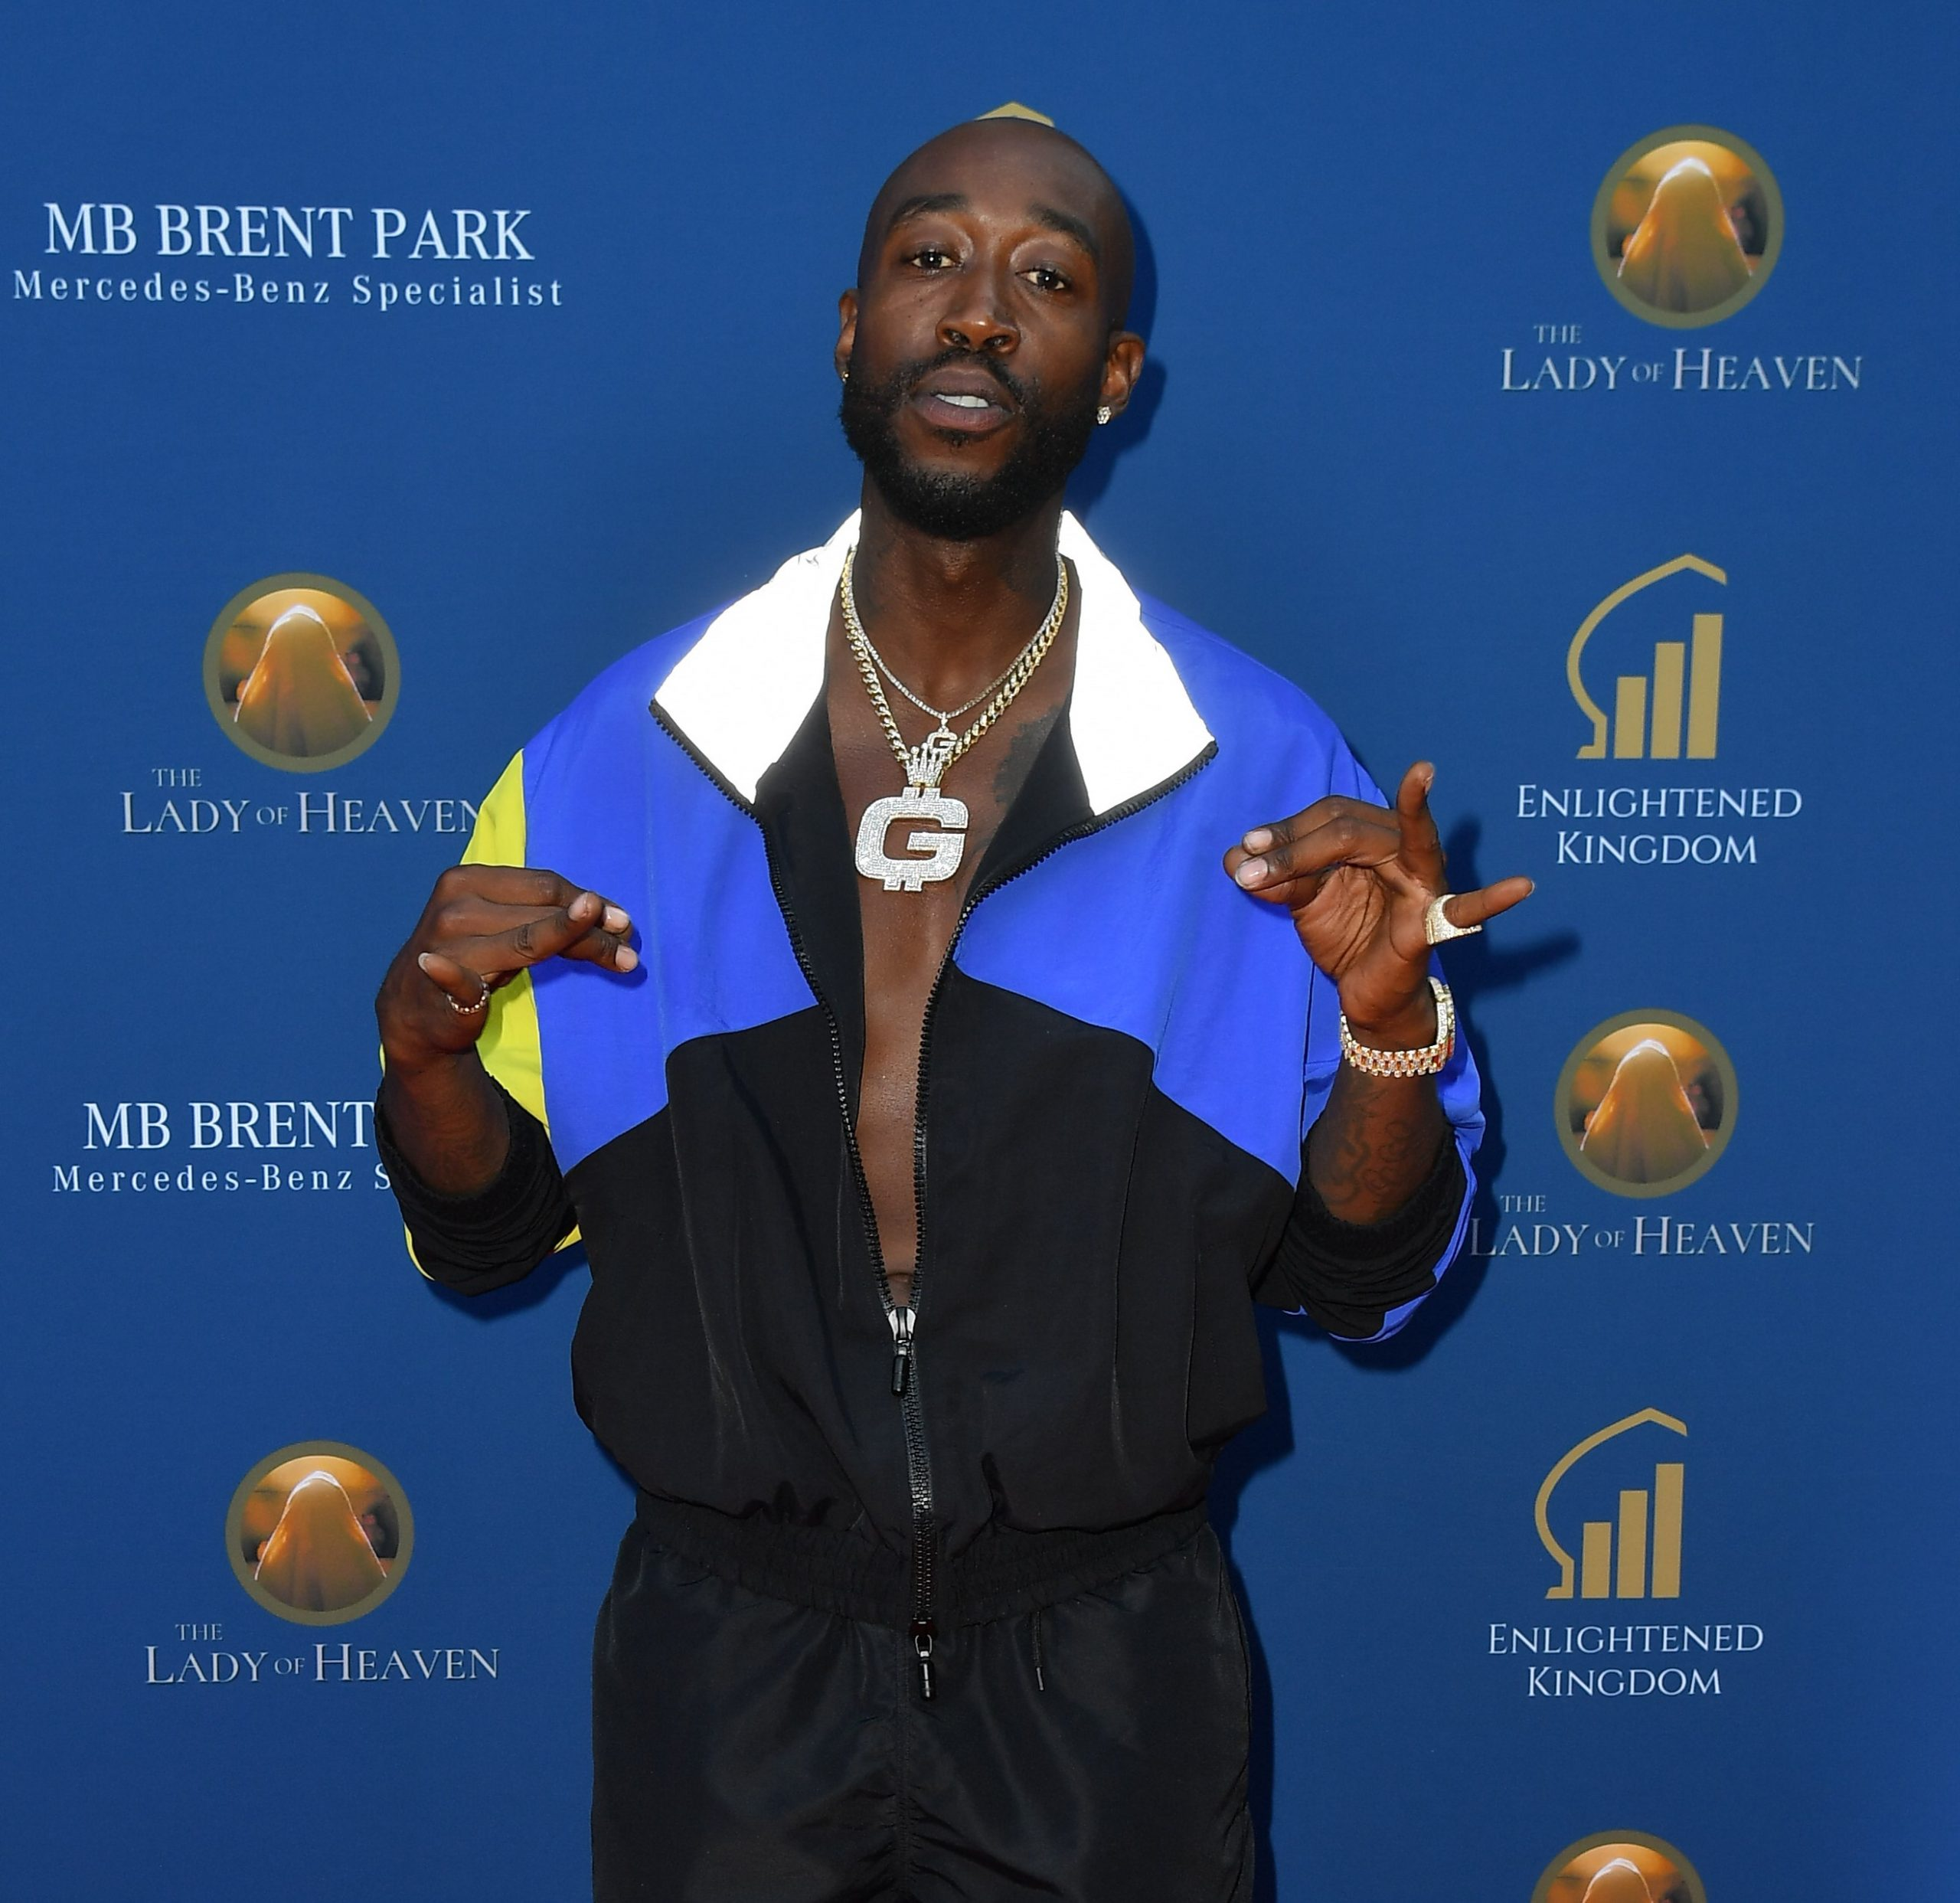 """Freddie Gibbs Responds To Kendrick Lamar On New Track """"Vice Lord Poetry"""""""